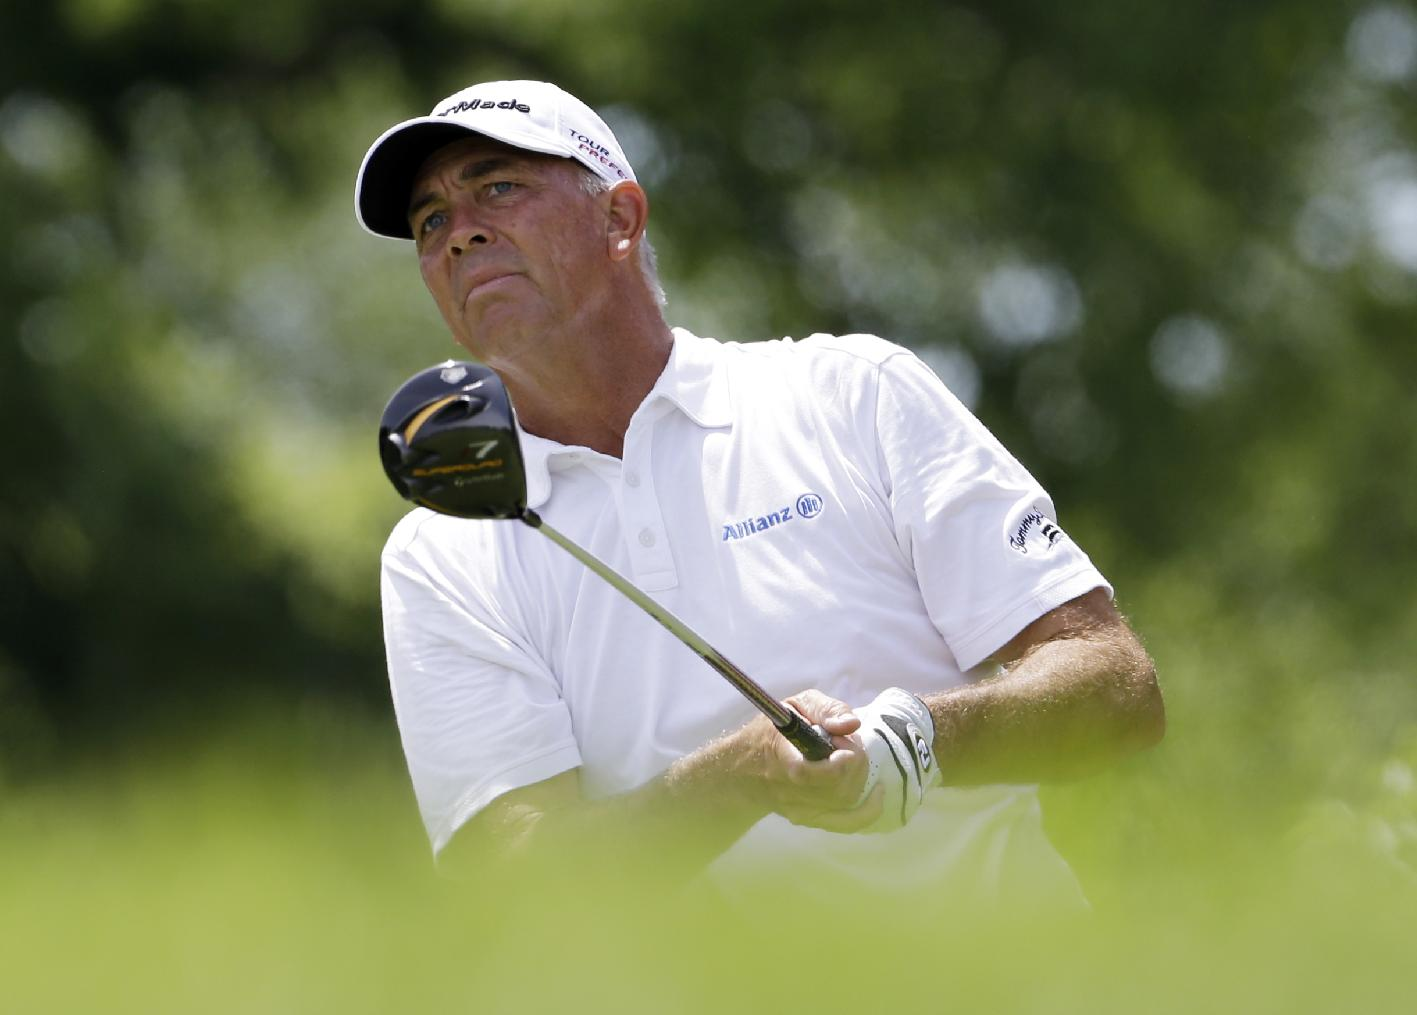 Tom Lehman watches his tee shot on the third hole during the final round of the Encompass Championship golf tournament in Glenview, Ill., Sunday, June 22, 2014